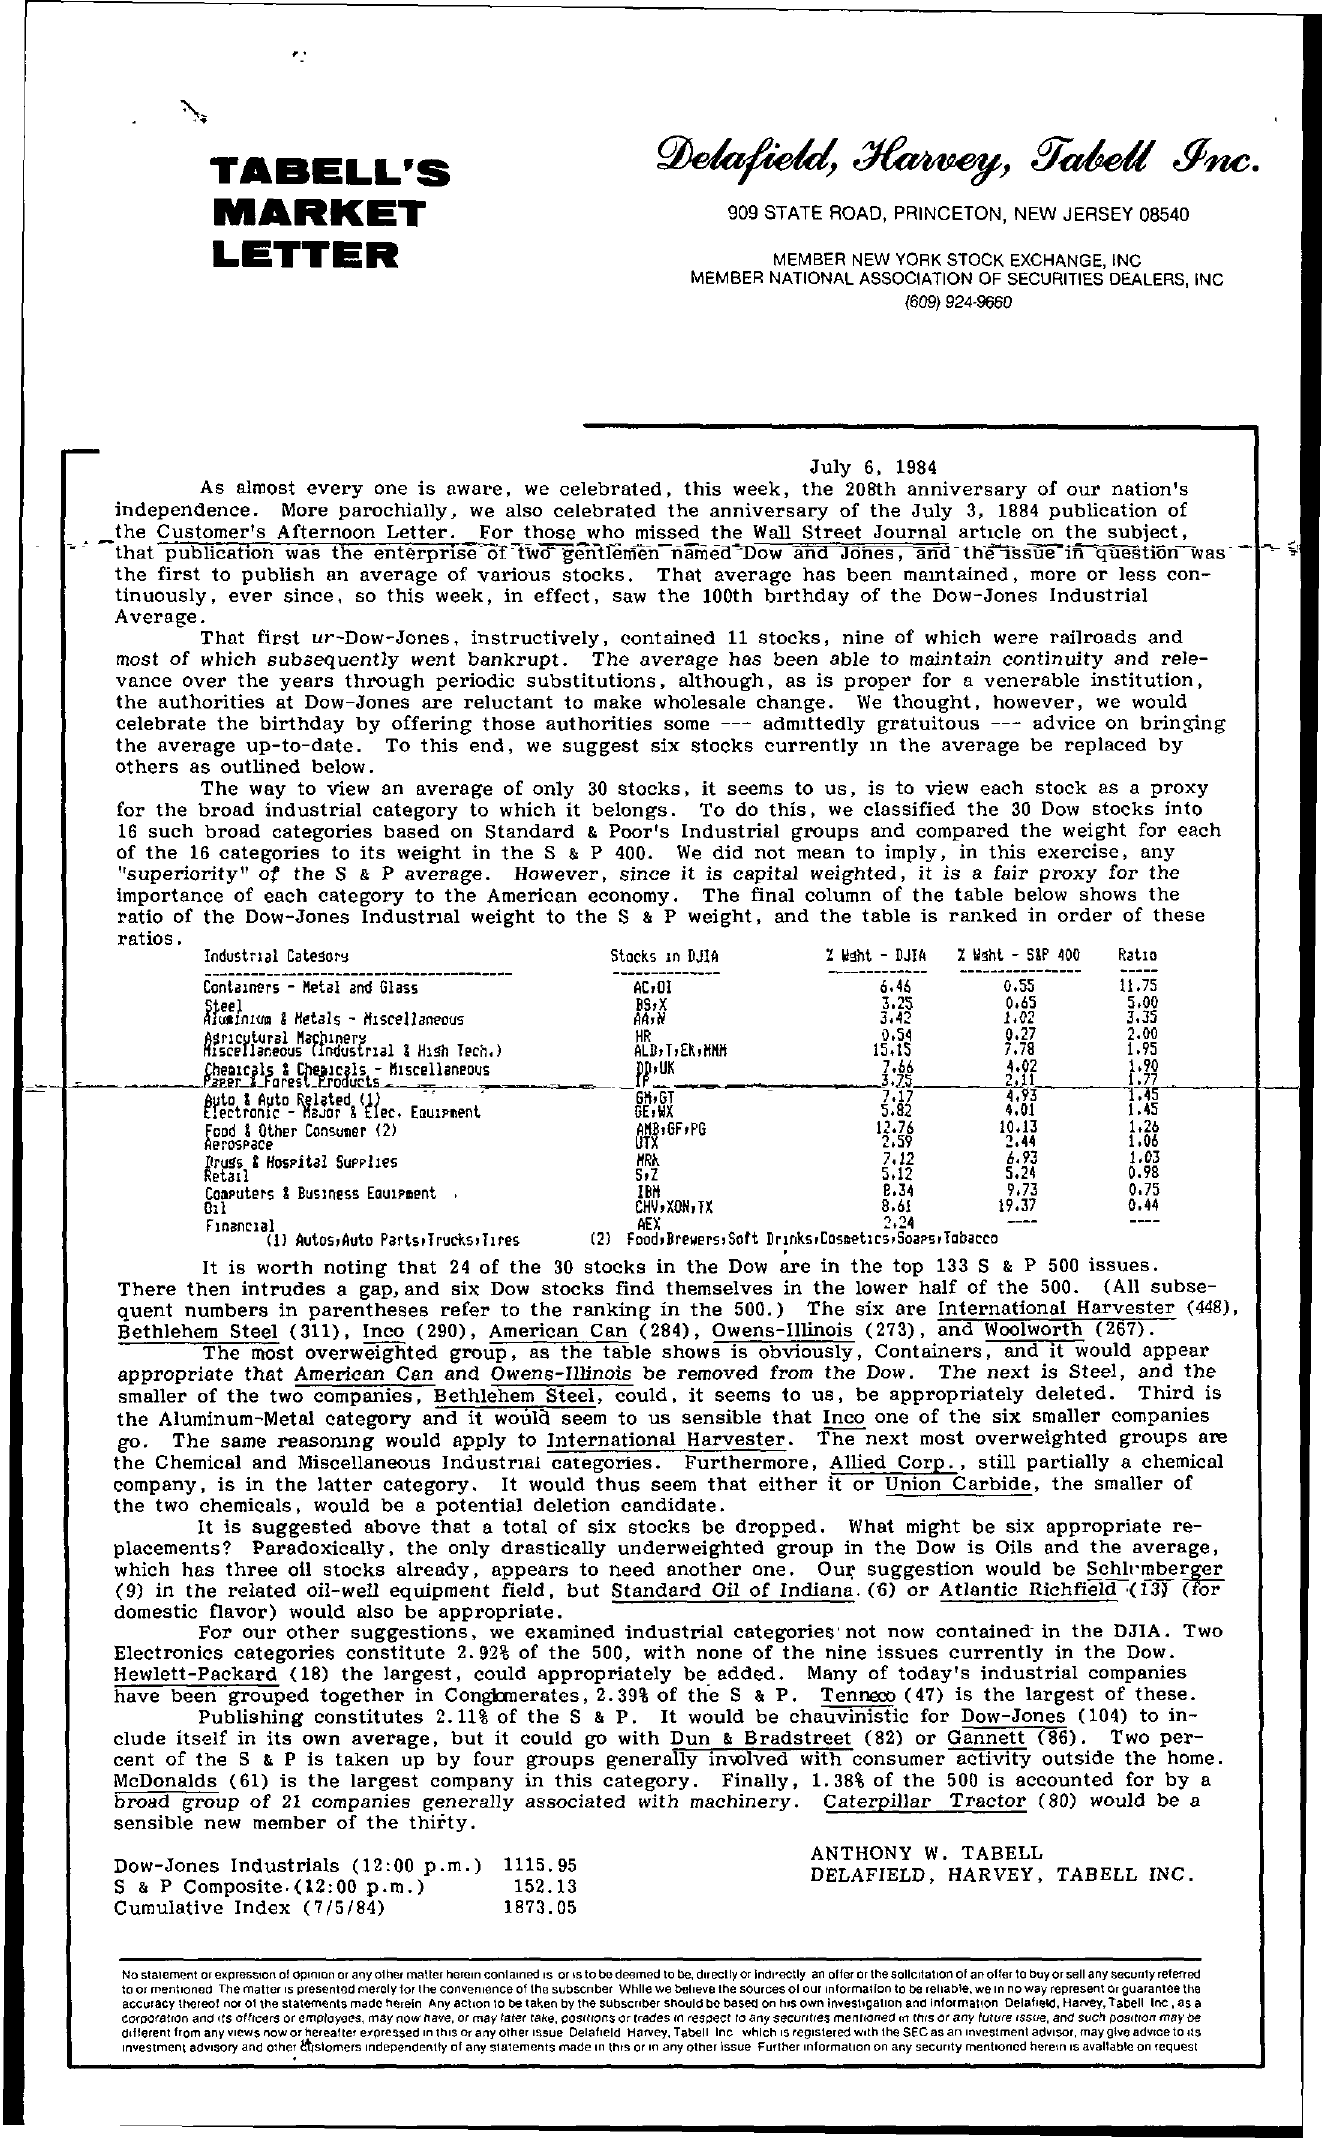 Tabell's Market Letter - July 06, 1984